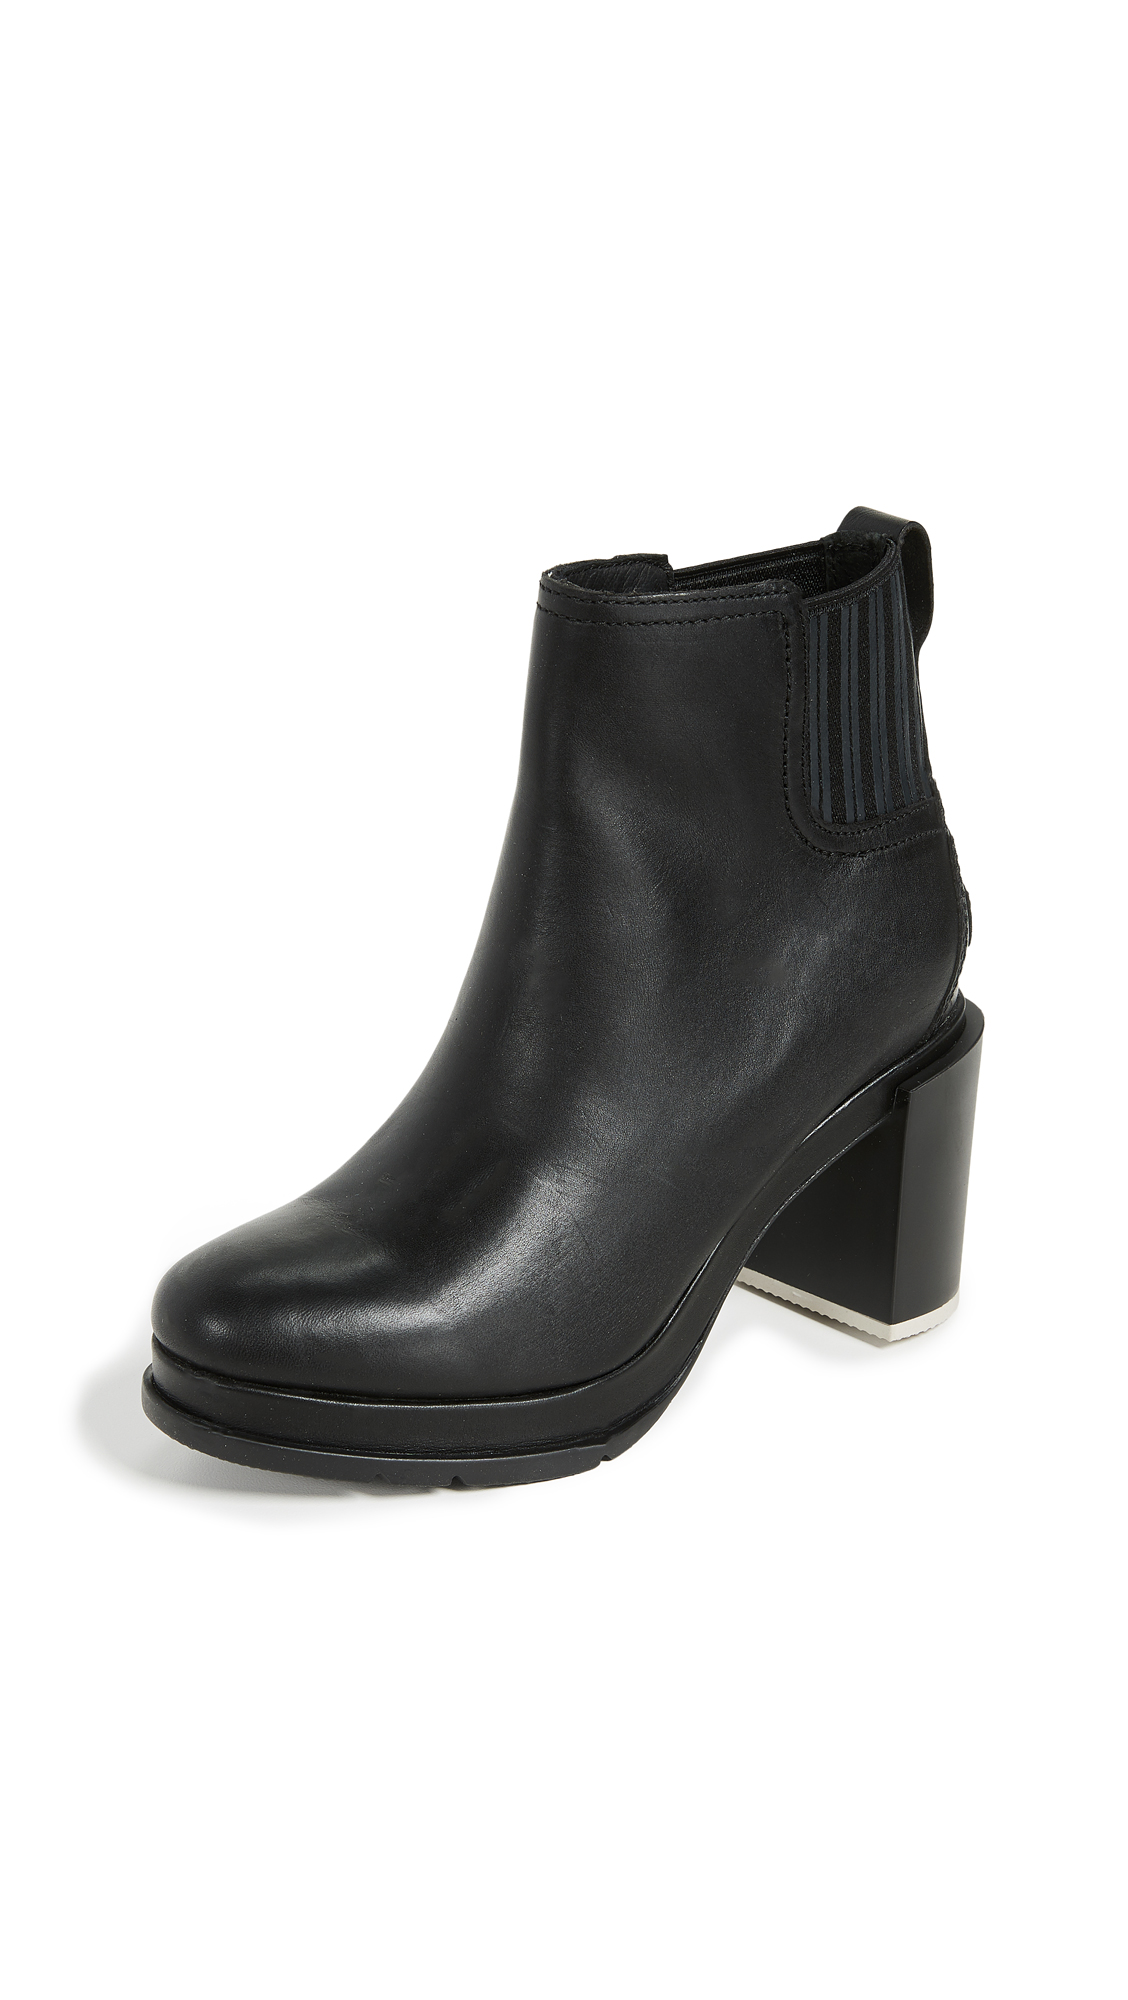 Sorel Margo Chelsea Booties - Ring/Black